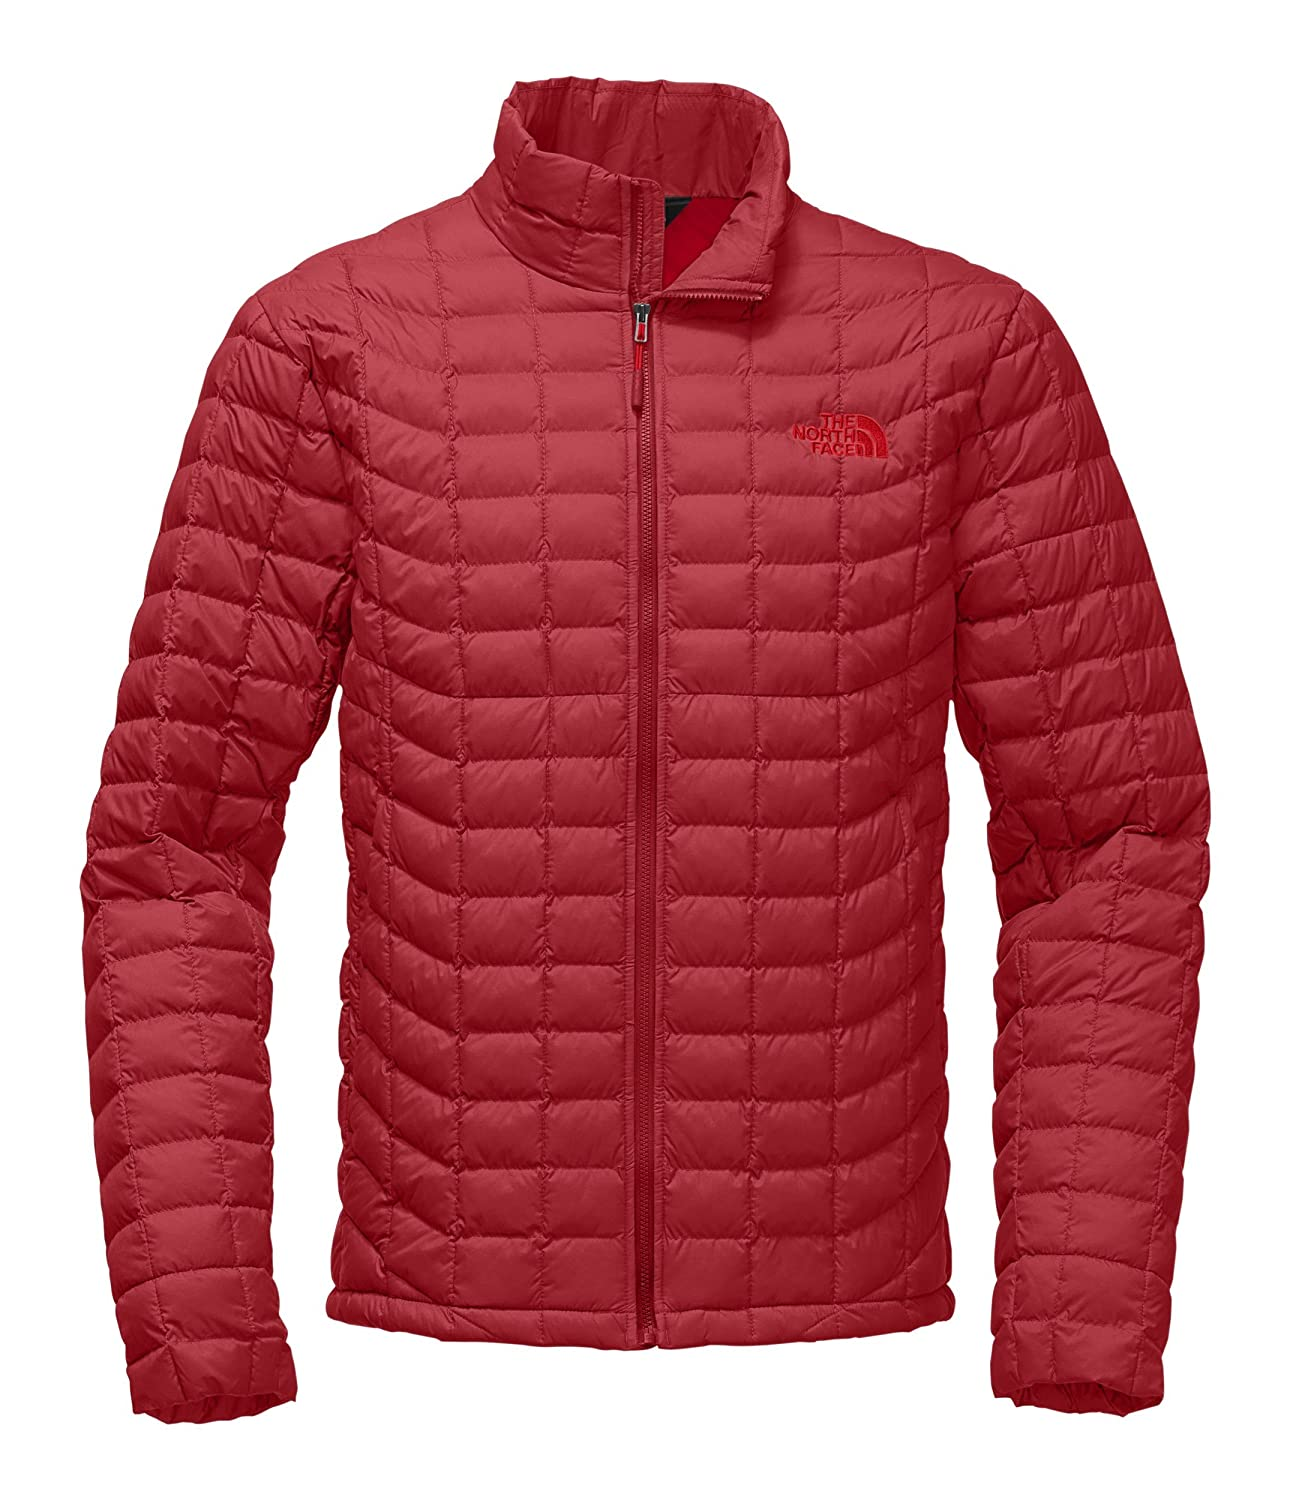 cb6a5c26aca7 Amazon.com  The North Face Men s Thermoball Full Zip Jacket  THE NORTH FACE   Clothing